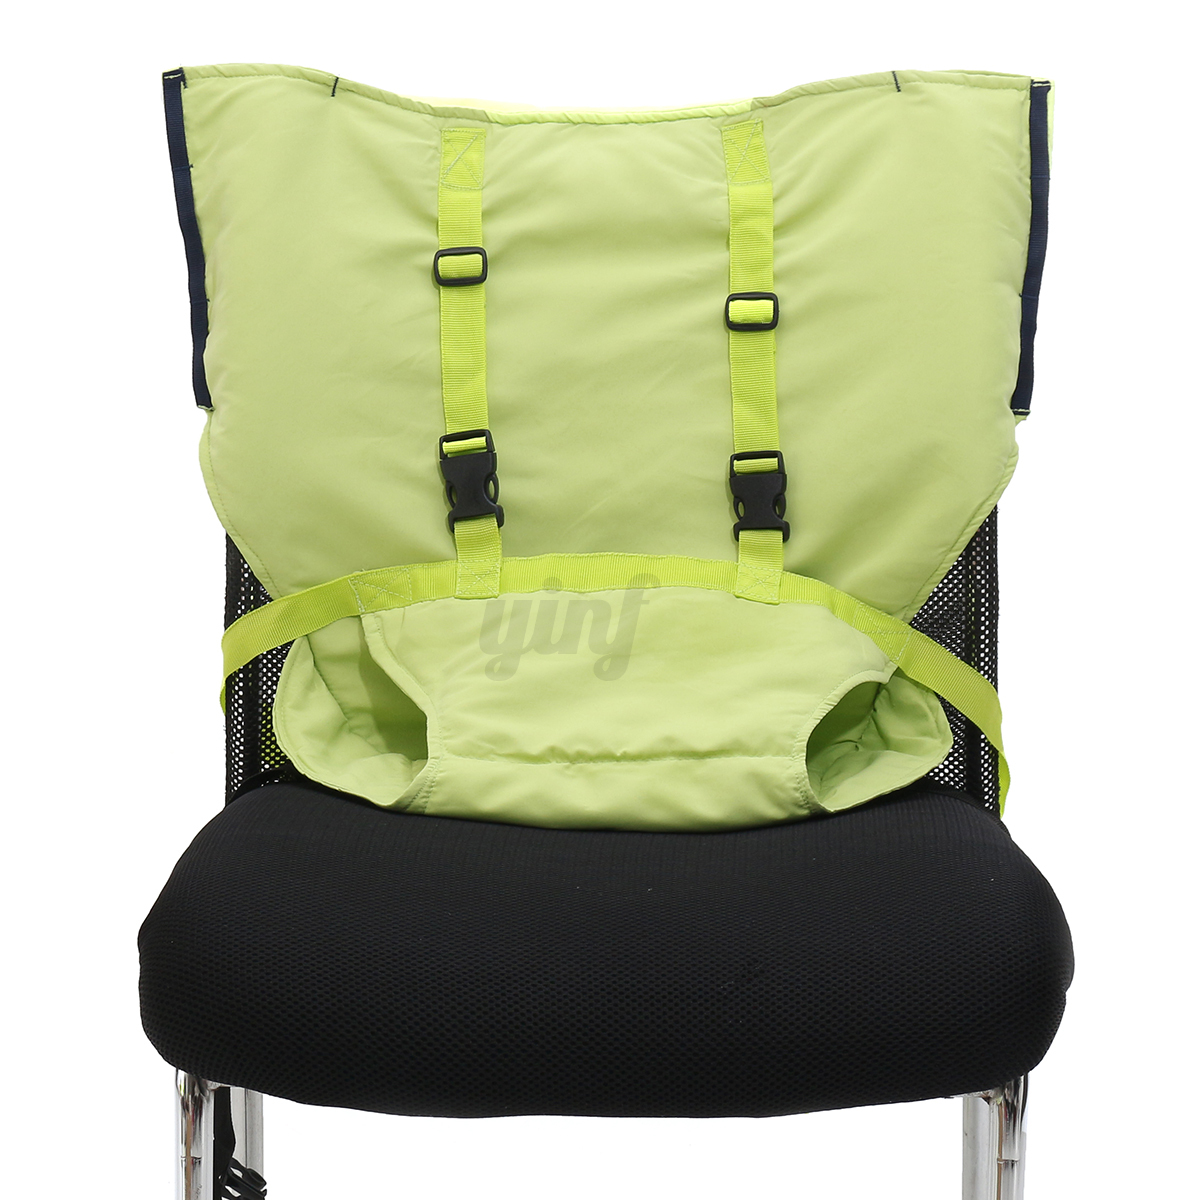 Portable Baby Infant Kids Feeding High Chair Harness Seat